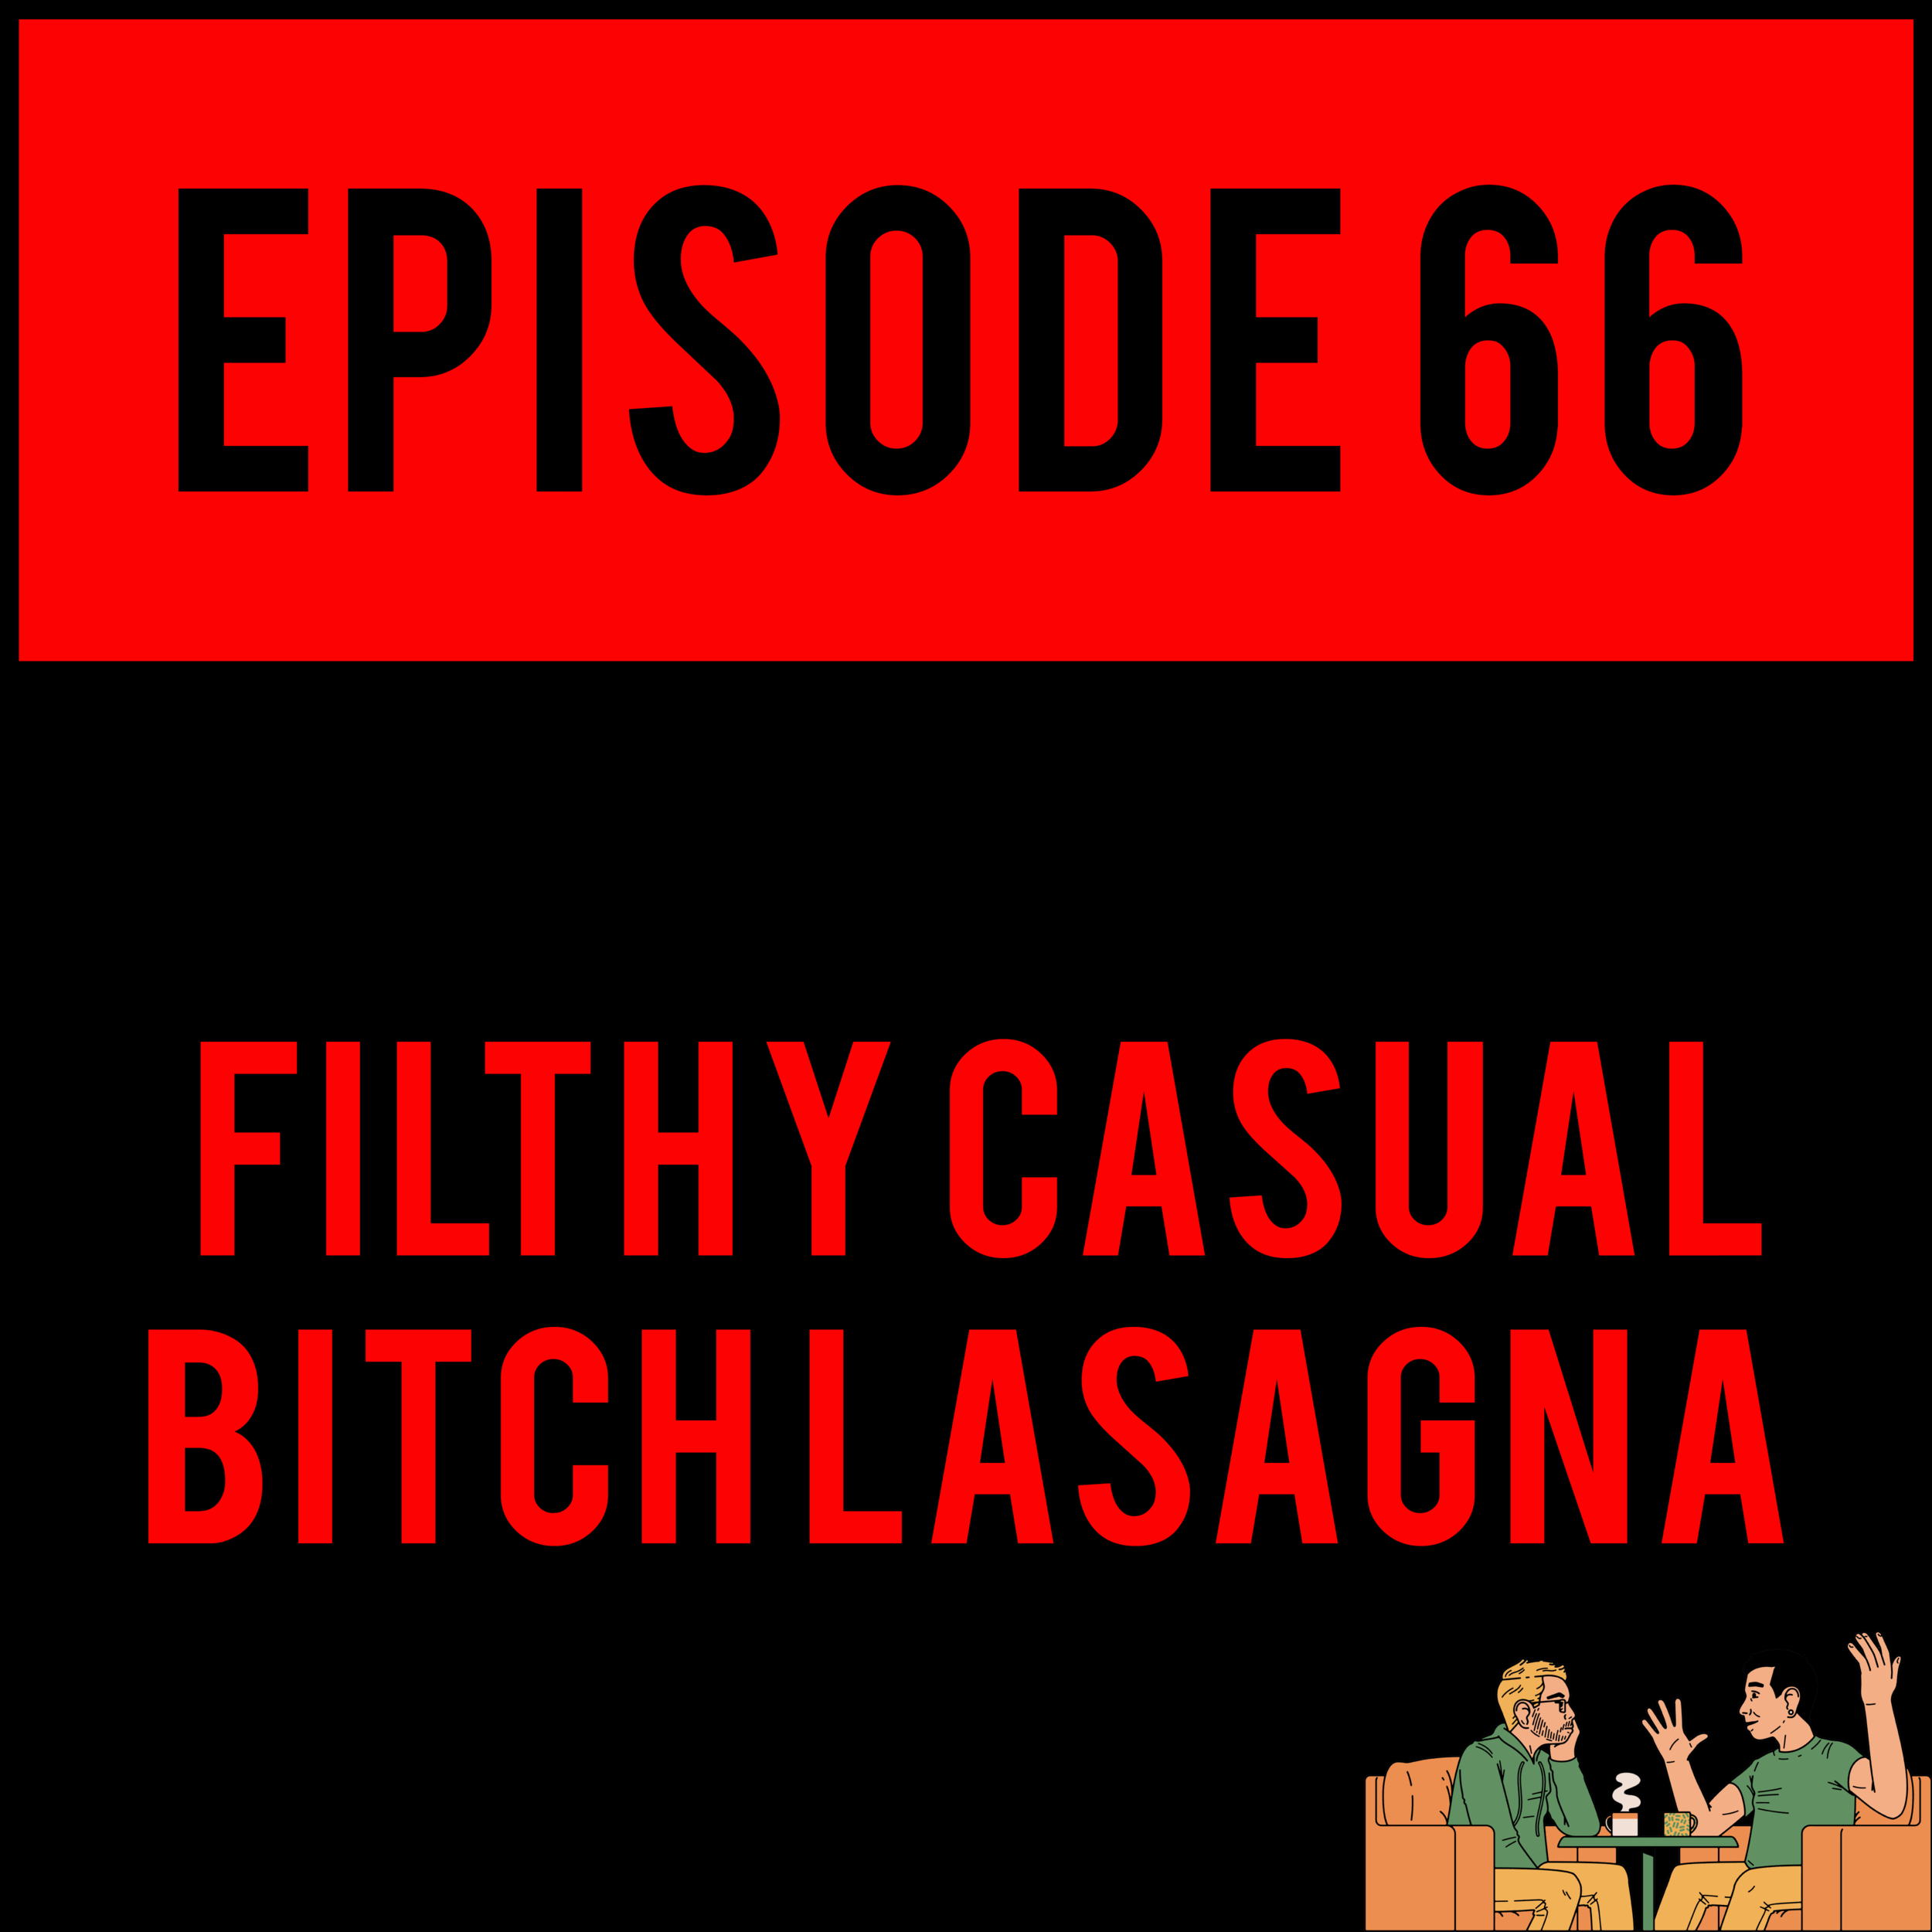 EPISODE 66 - Alex gets all boned up and Justyn unlocks your heart by jamming a dull key into it. FILTHY CASUAL BITCH LASAGNA - EPISODE 66 is more powerful than Shaggy. Barely.